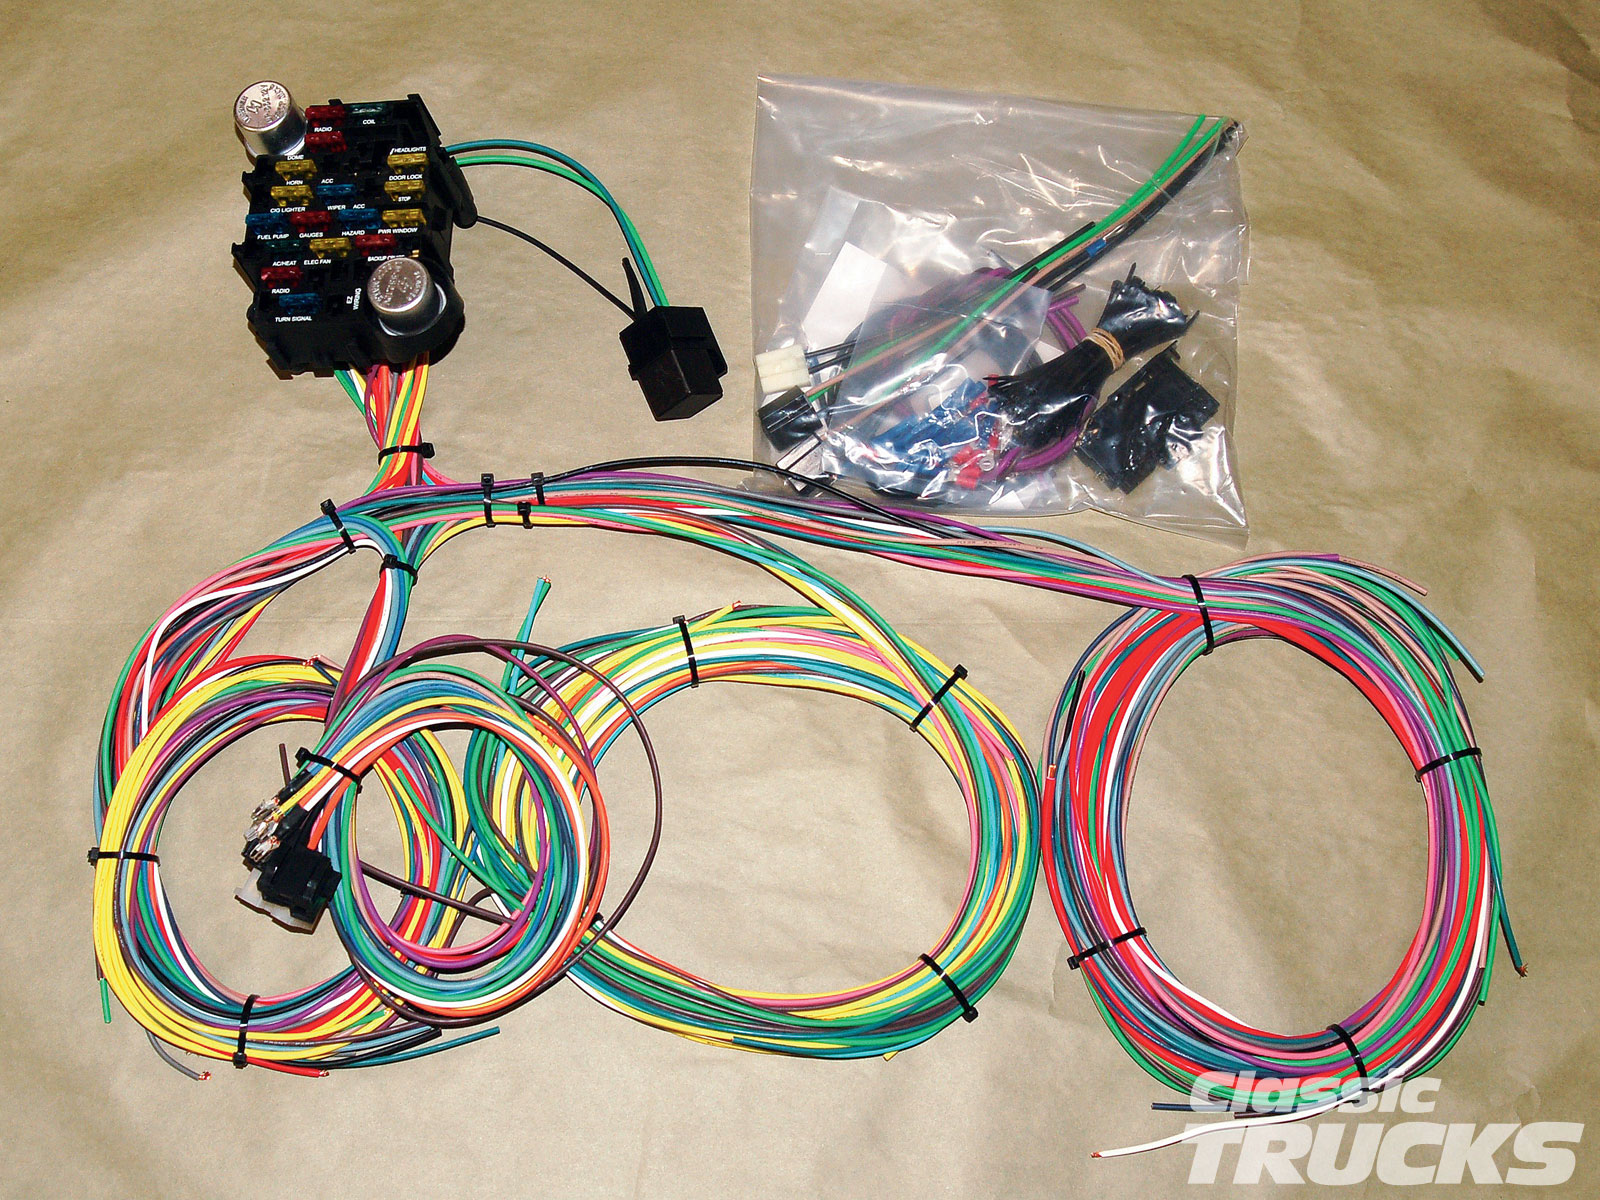 1010clt 02 o aftermarket wiring harness install kit?resize\\\=665%2C499 painless wiring harness australia tamahuproject org painless wiring harness australia at bakdesigns.co